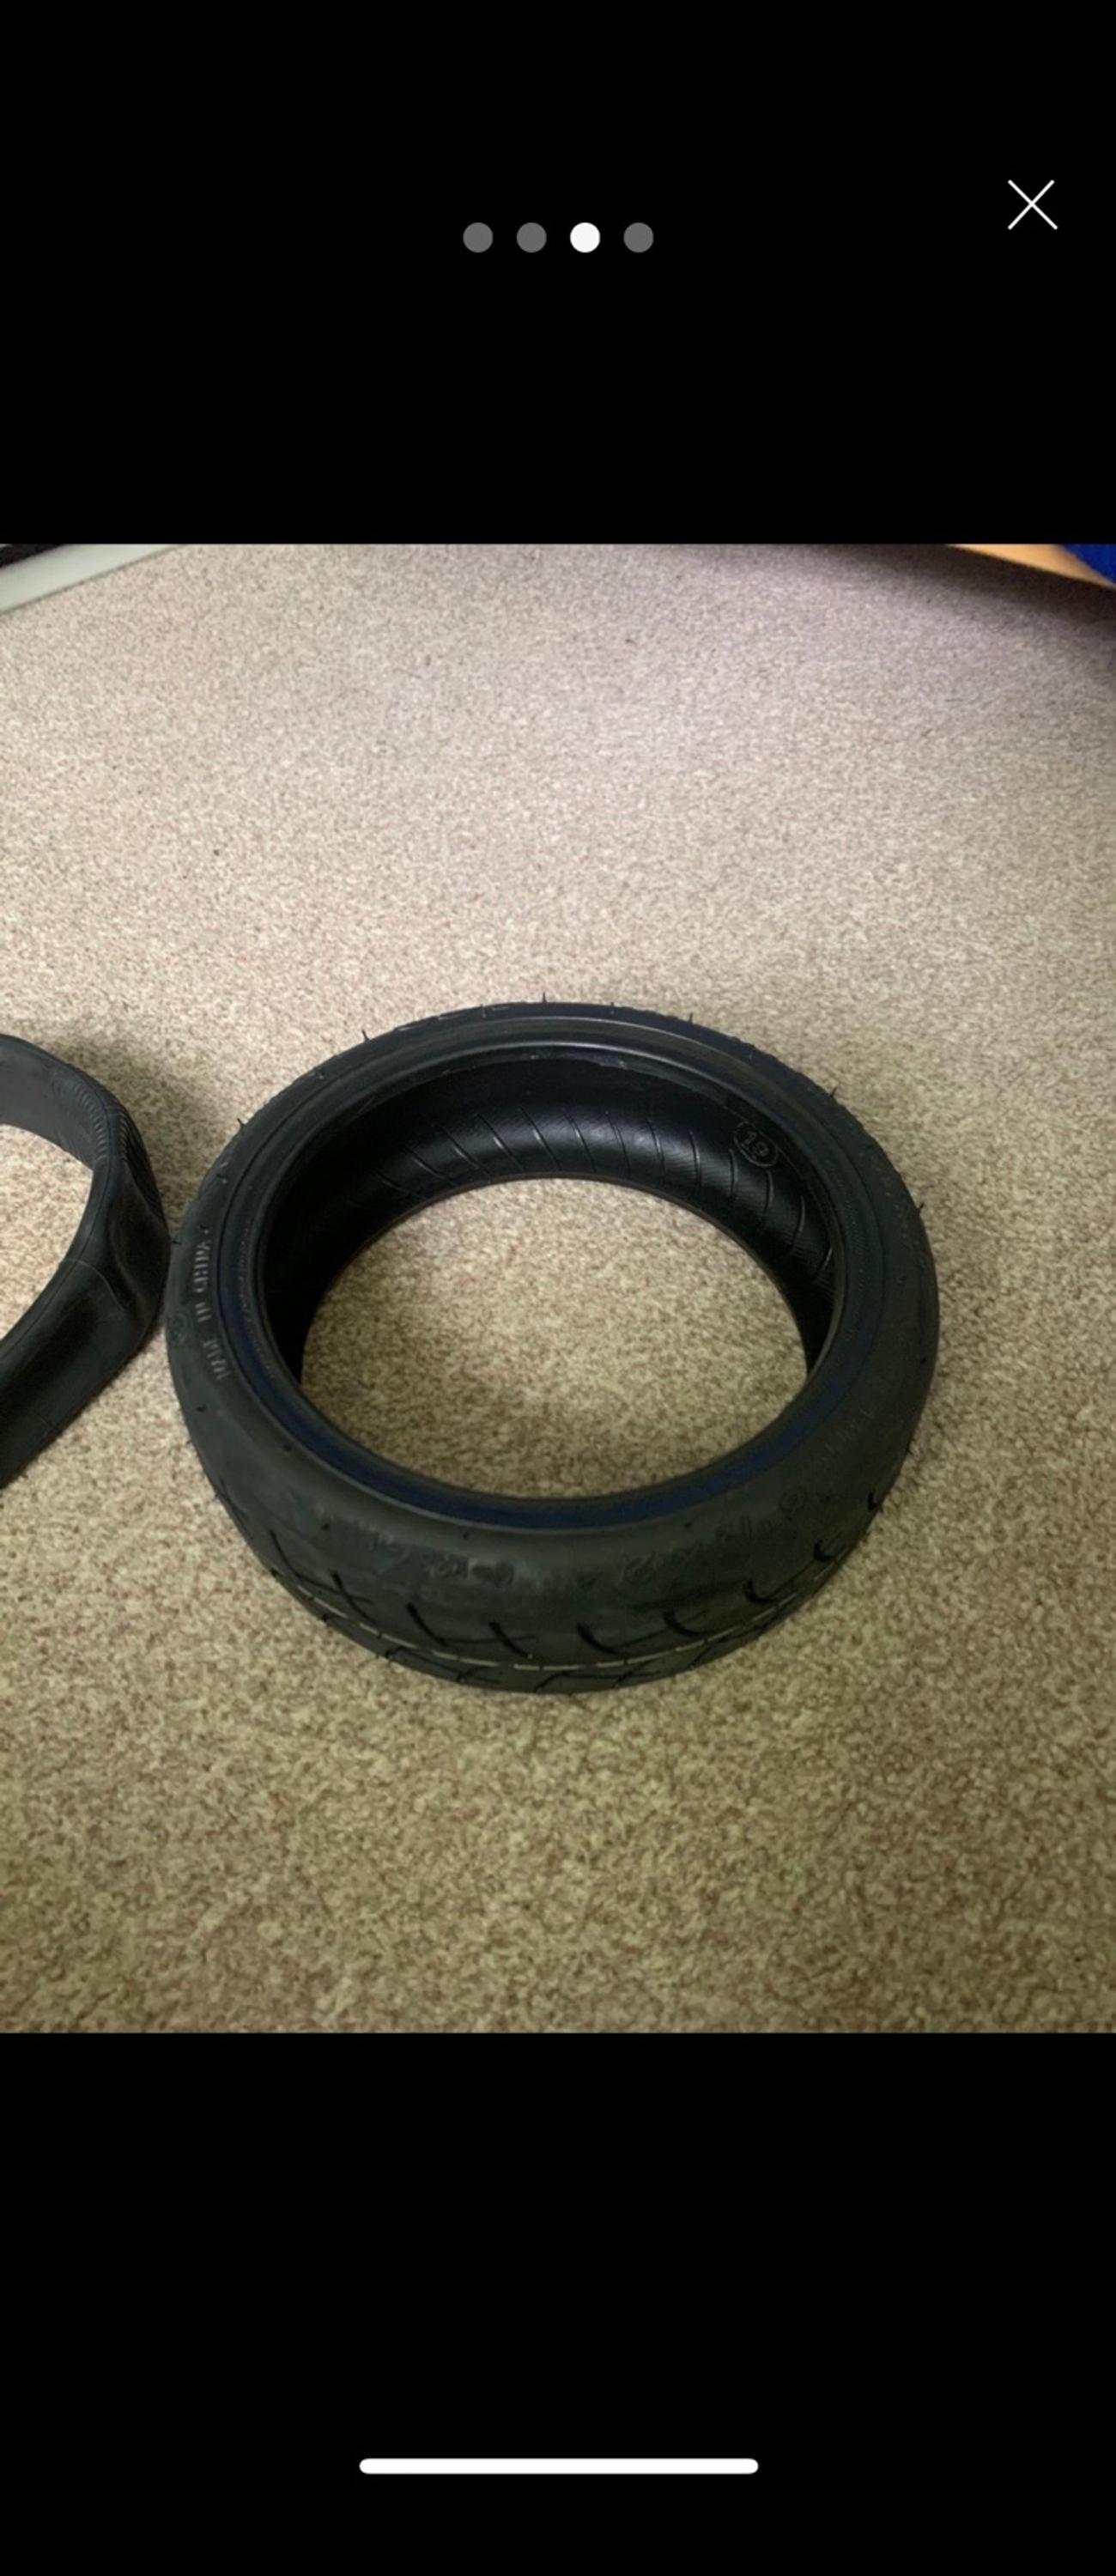 Upgraded tire with inner tube.Both are thicker than the original stock.  I have other stuff available for sale.  Please check my other listings. Follow me. I'll have other stuff coming soon.  Cash only. Fitting on request for a combine price. Message.  Check out my Instagram page. #Lee_miscooterrepairs